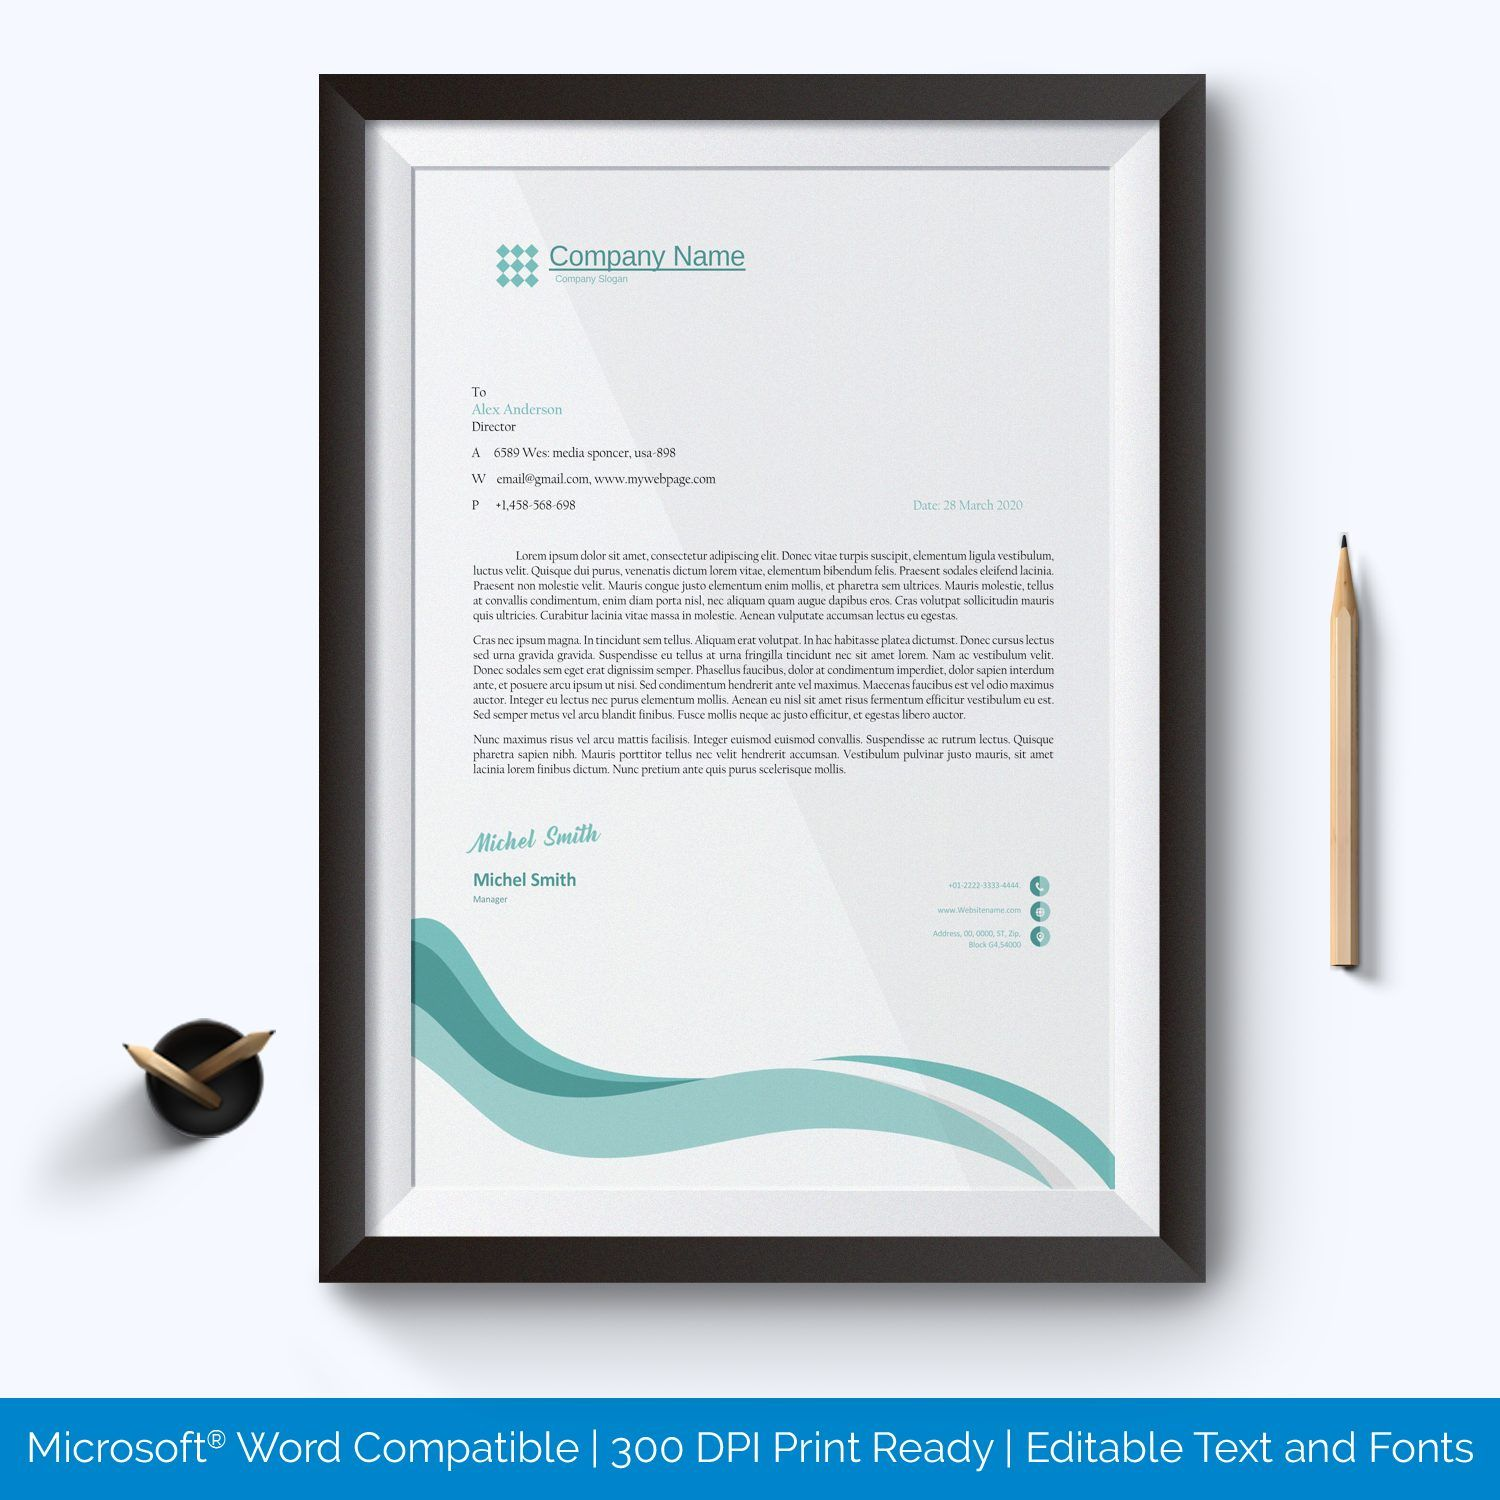 pin on letterhead templates team manager resume sample social media intern job description for clerk with no experience